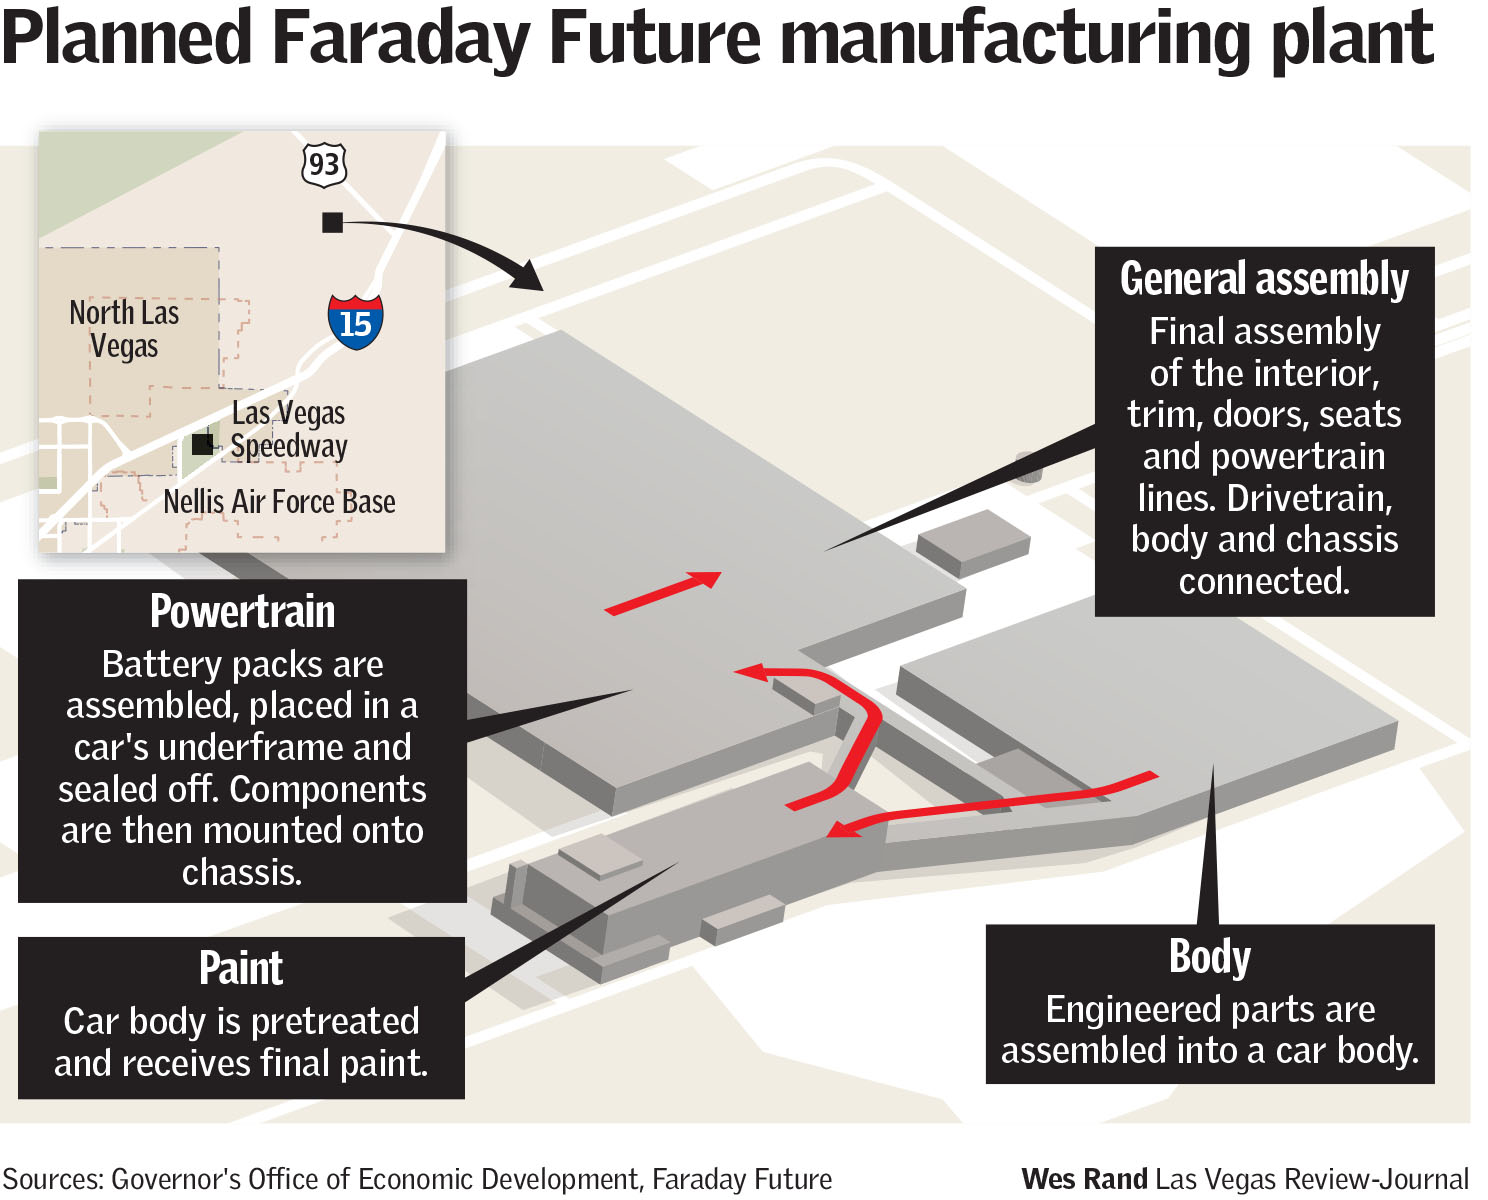 Planned Faraday Future manufacturing plant